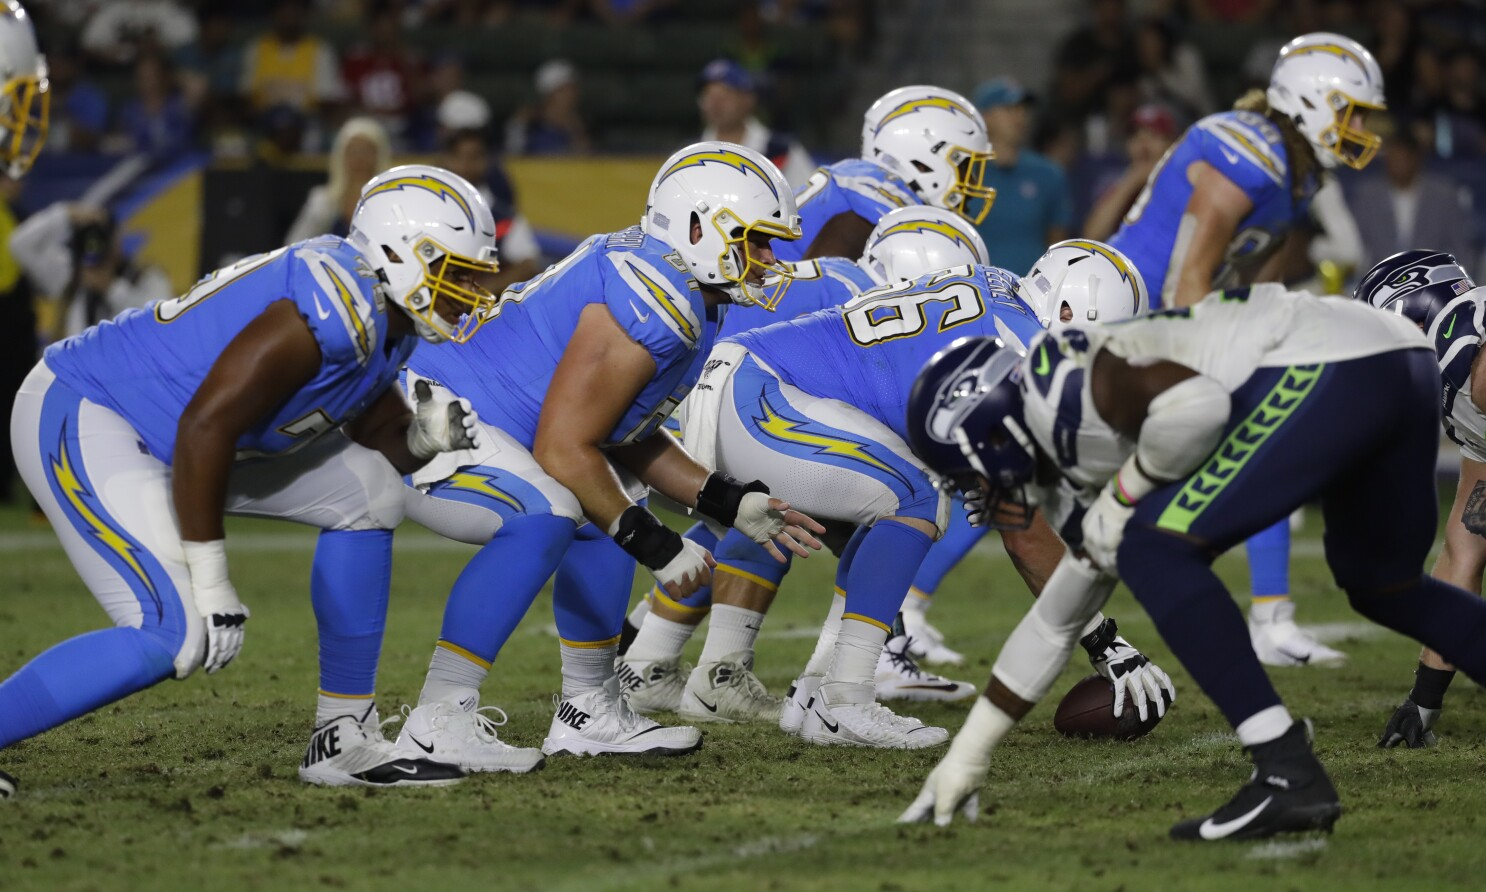 Chargers' struggles along the offensive line among Anthony Lynn's biggest concerns